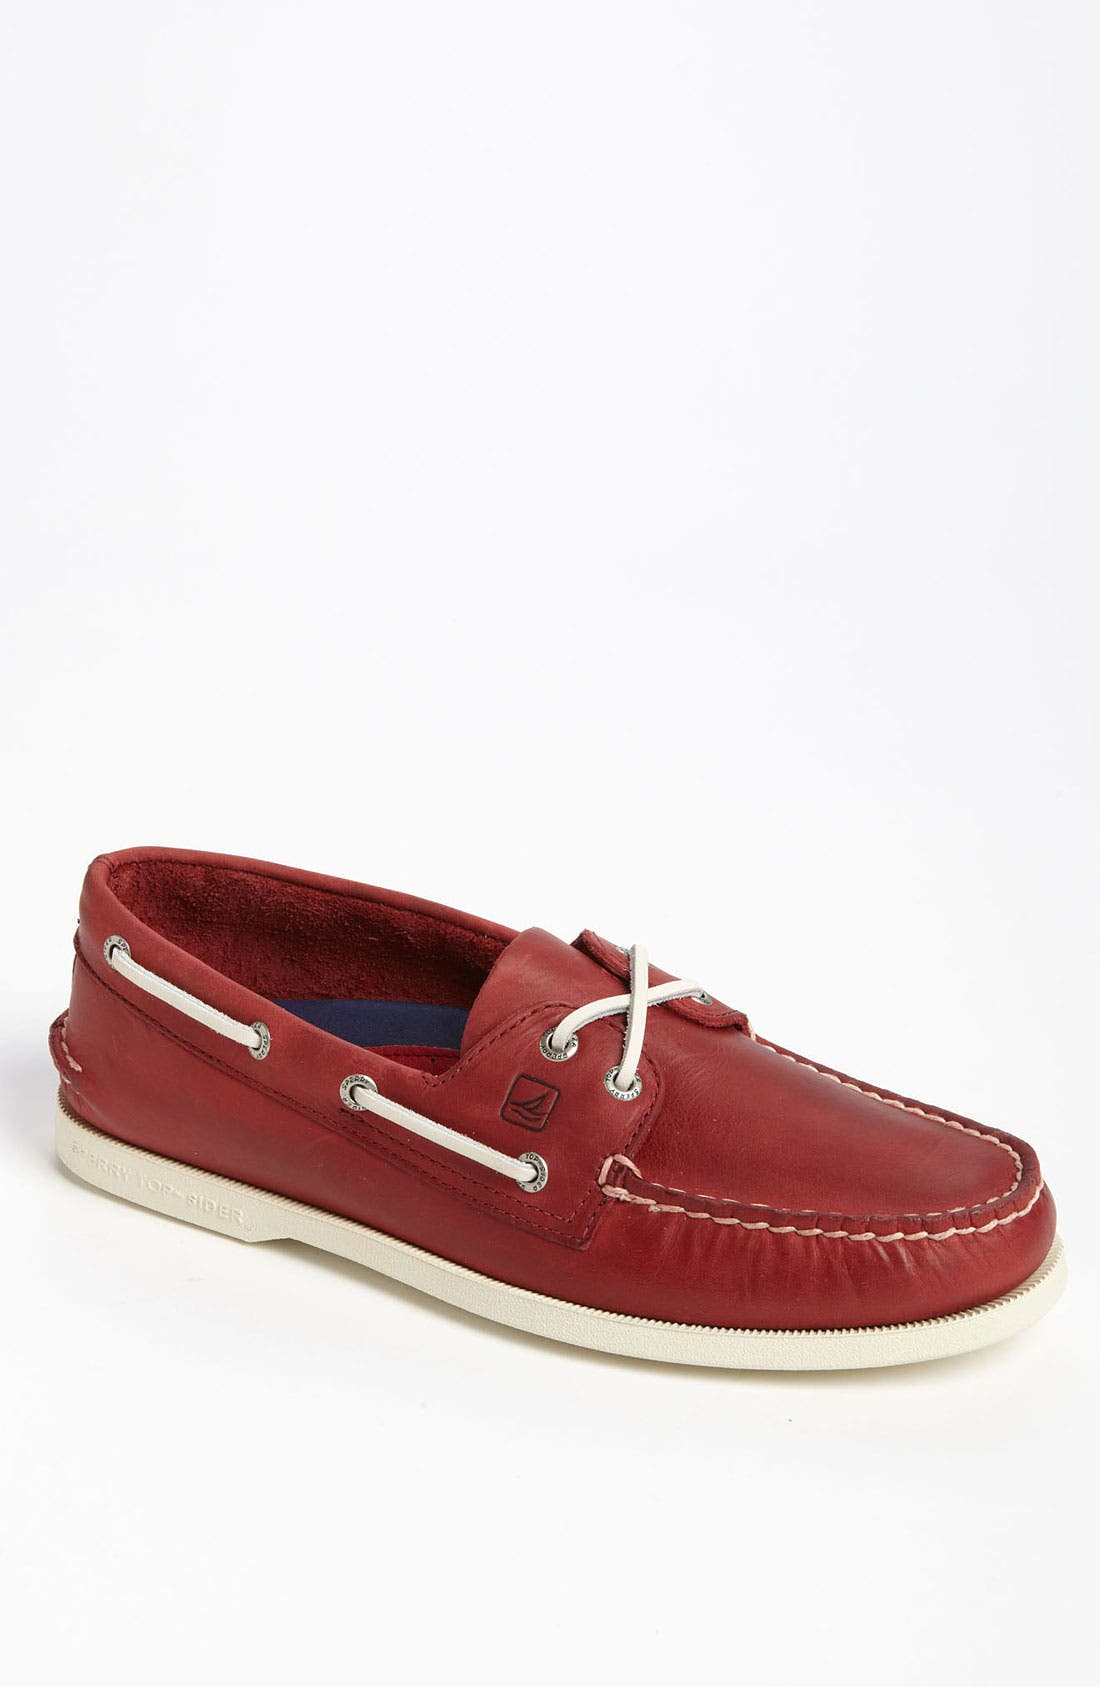 Alternate Image 1 Selected - Sperry Top-Sider® 'Authentic Original' Boat Shoe (Men)